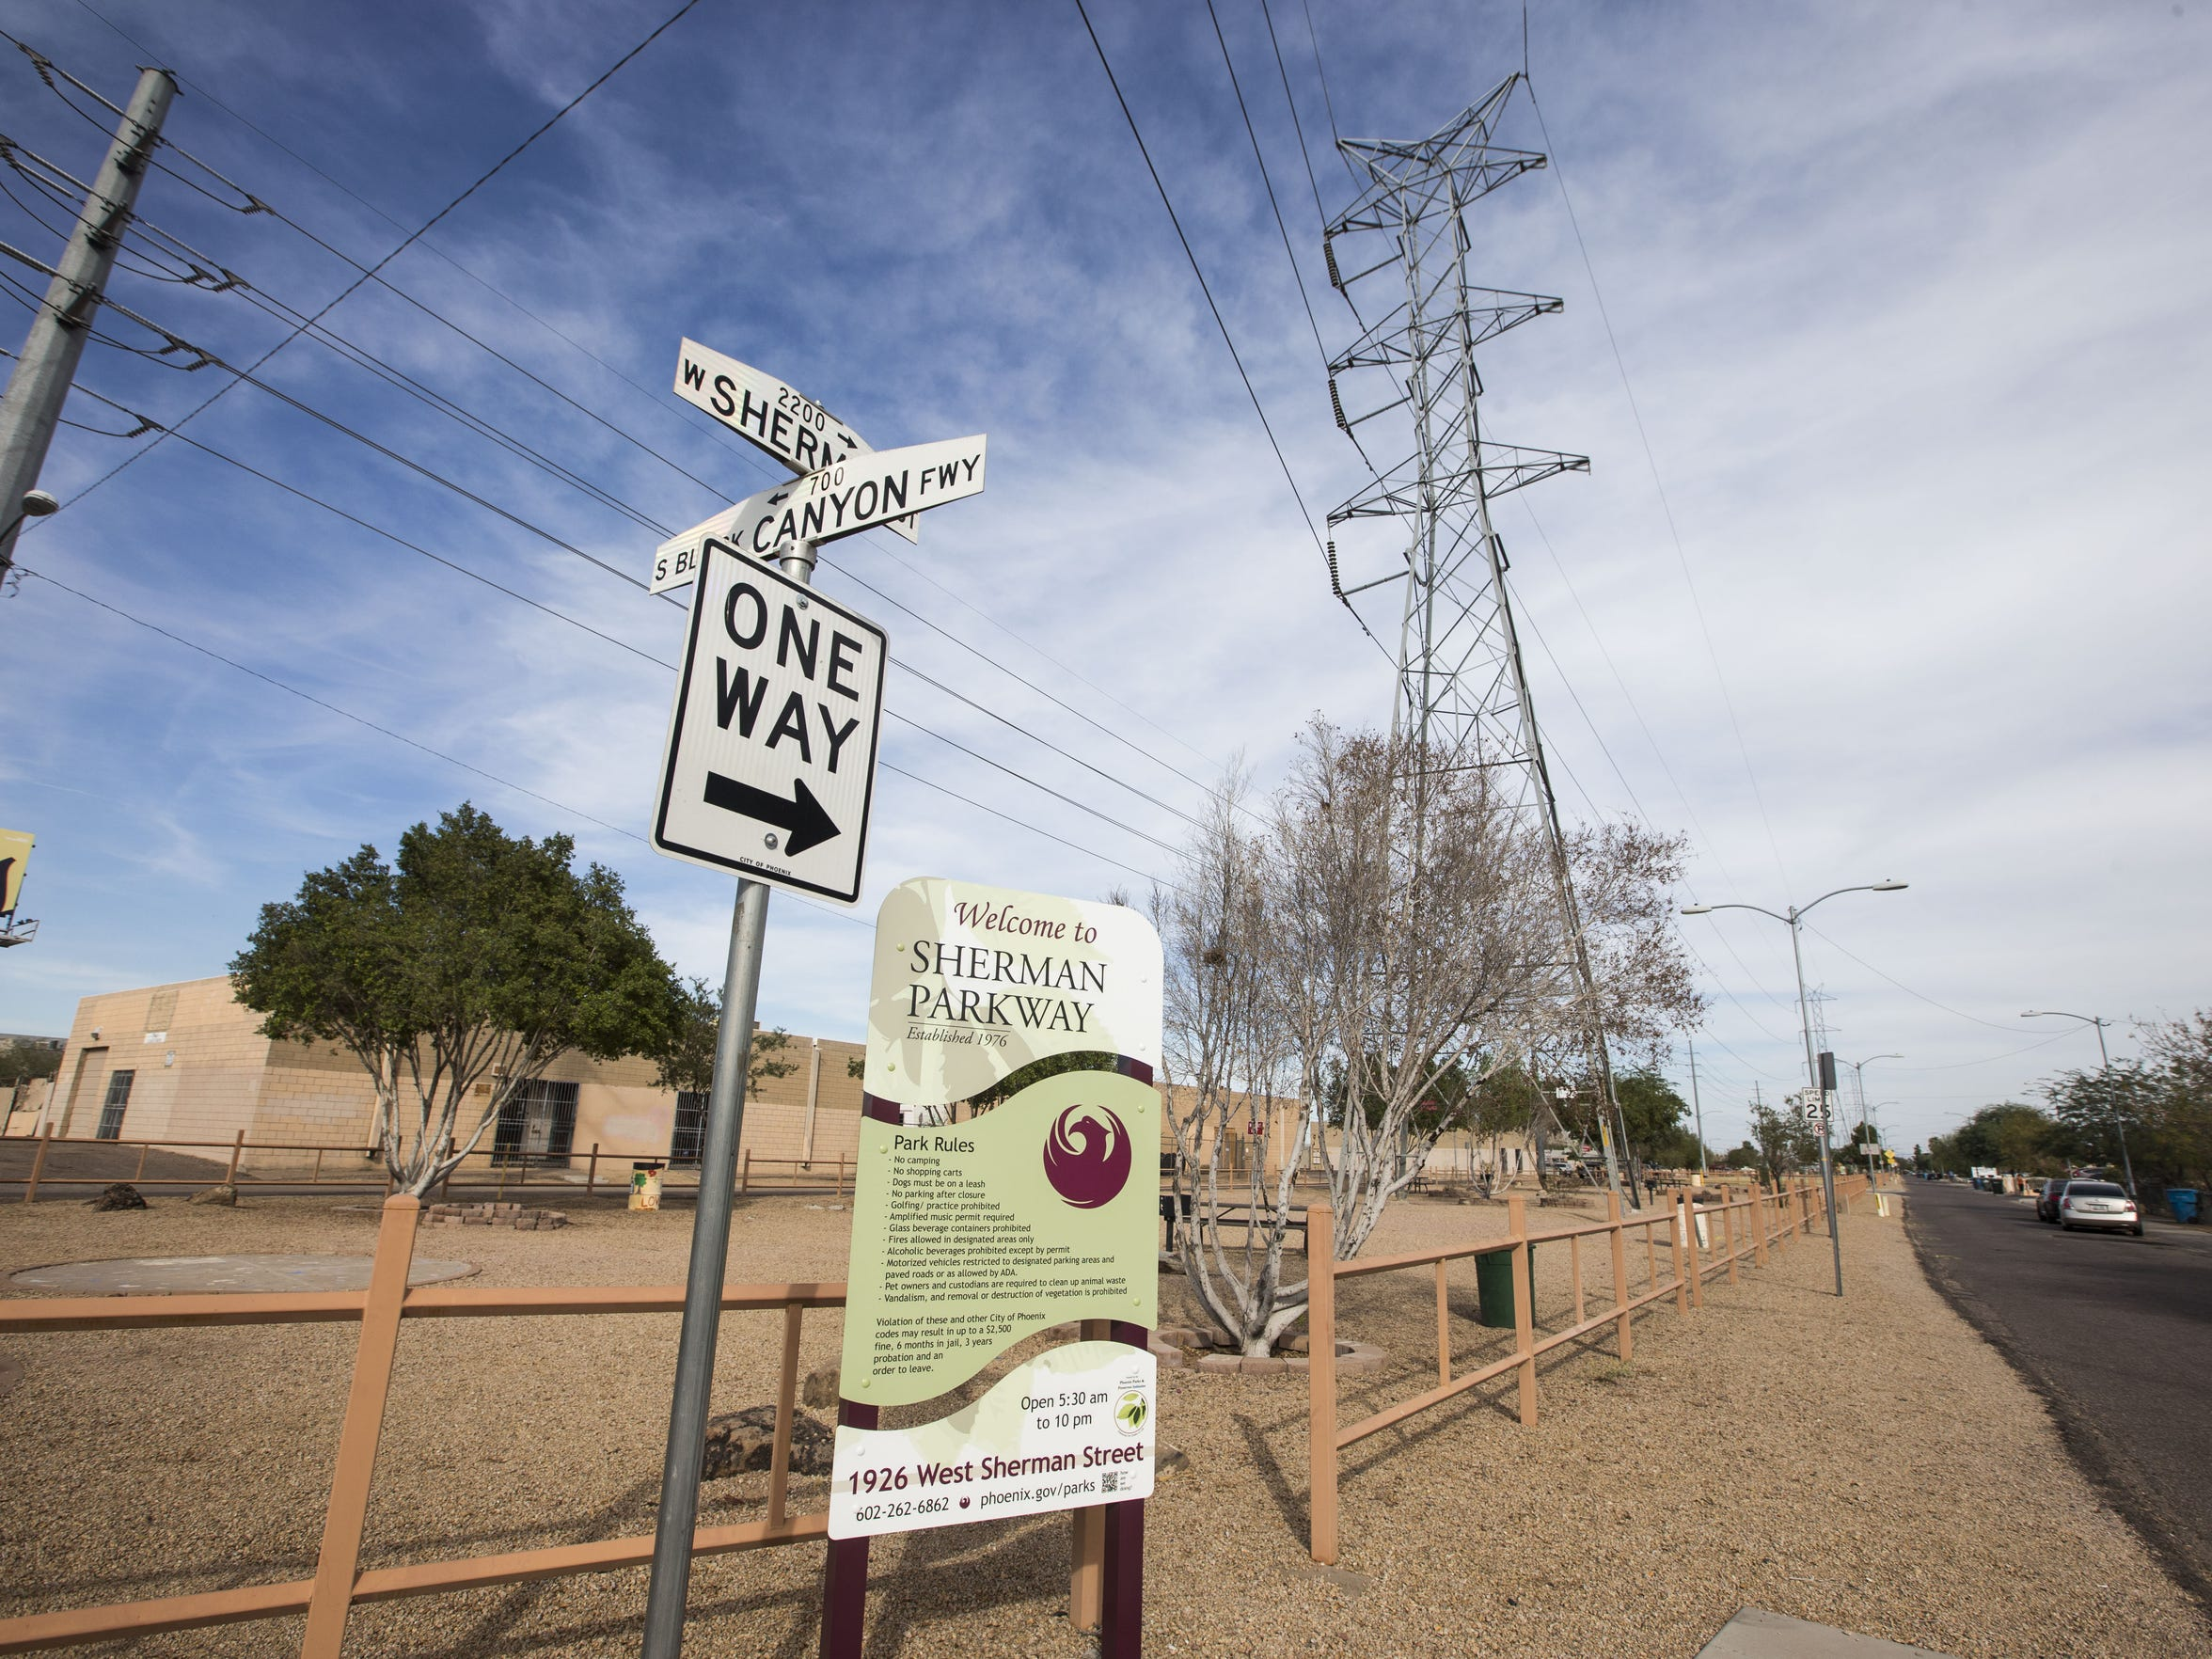 The city parks department says it can't plant many trees at Sherman Parkway because of the APS power lines above the park.